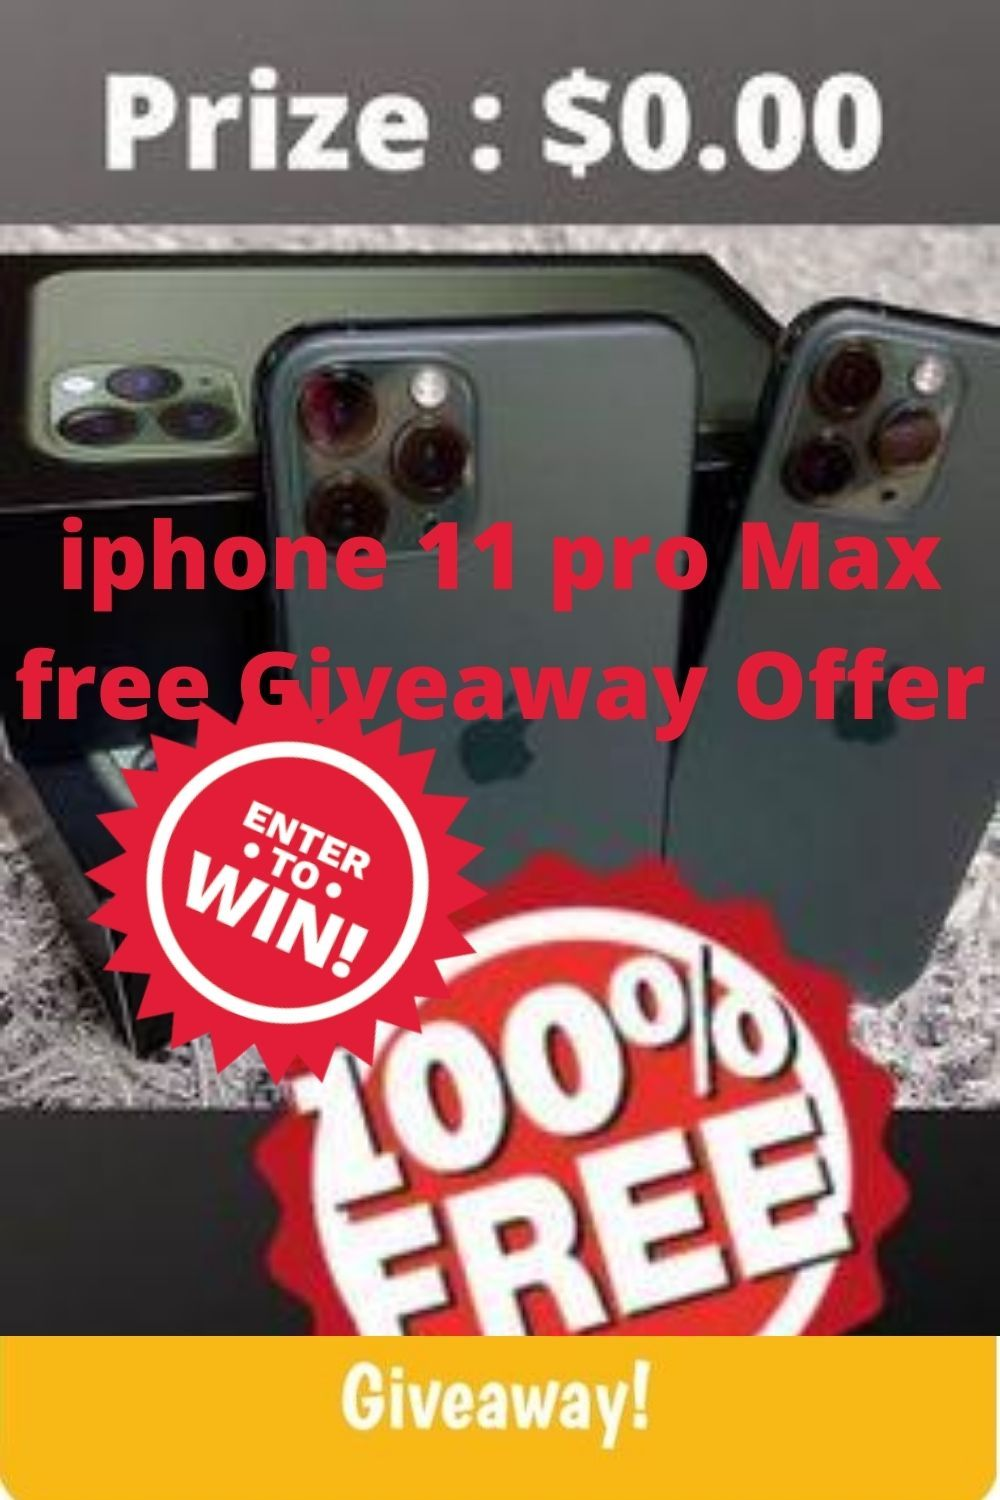 You can win a iPhone 11 Pro Max Win. Free Giveaway today ...